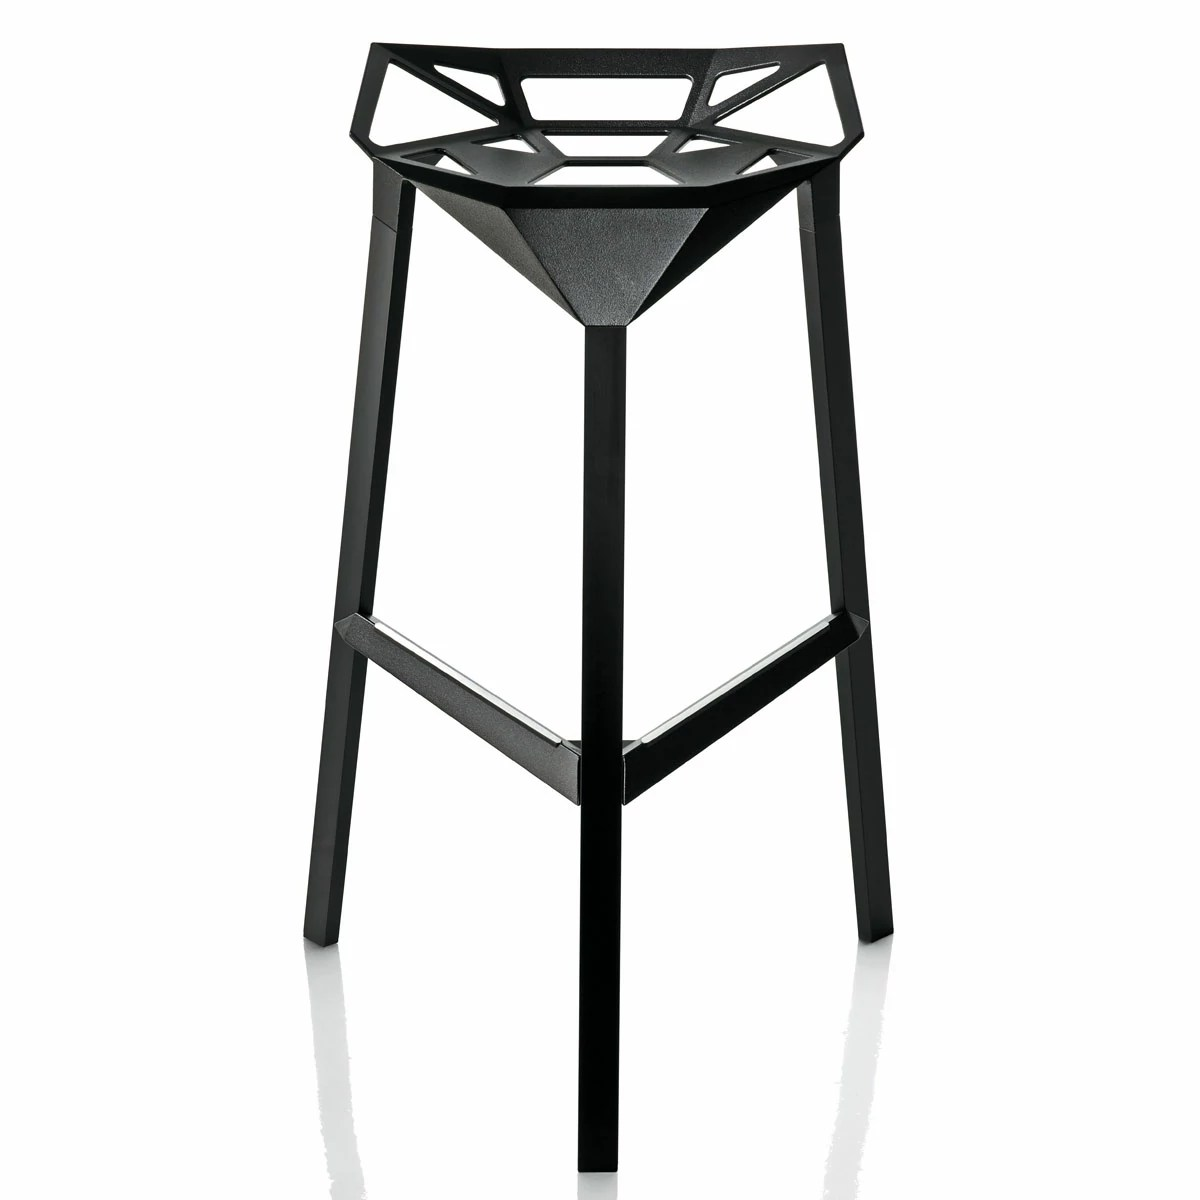 Tabouret De Bar Design Italien Top Tabouret Design Magis Stoolone Small With Tabouret De